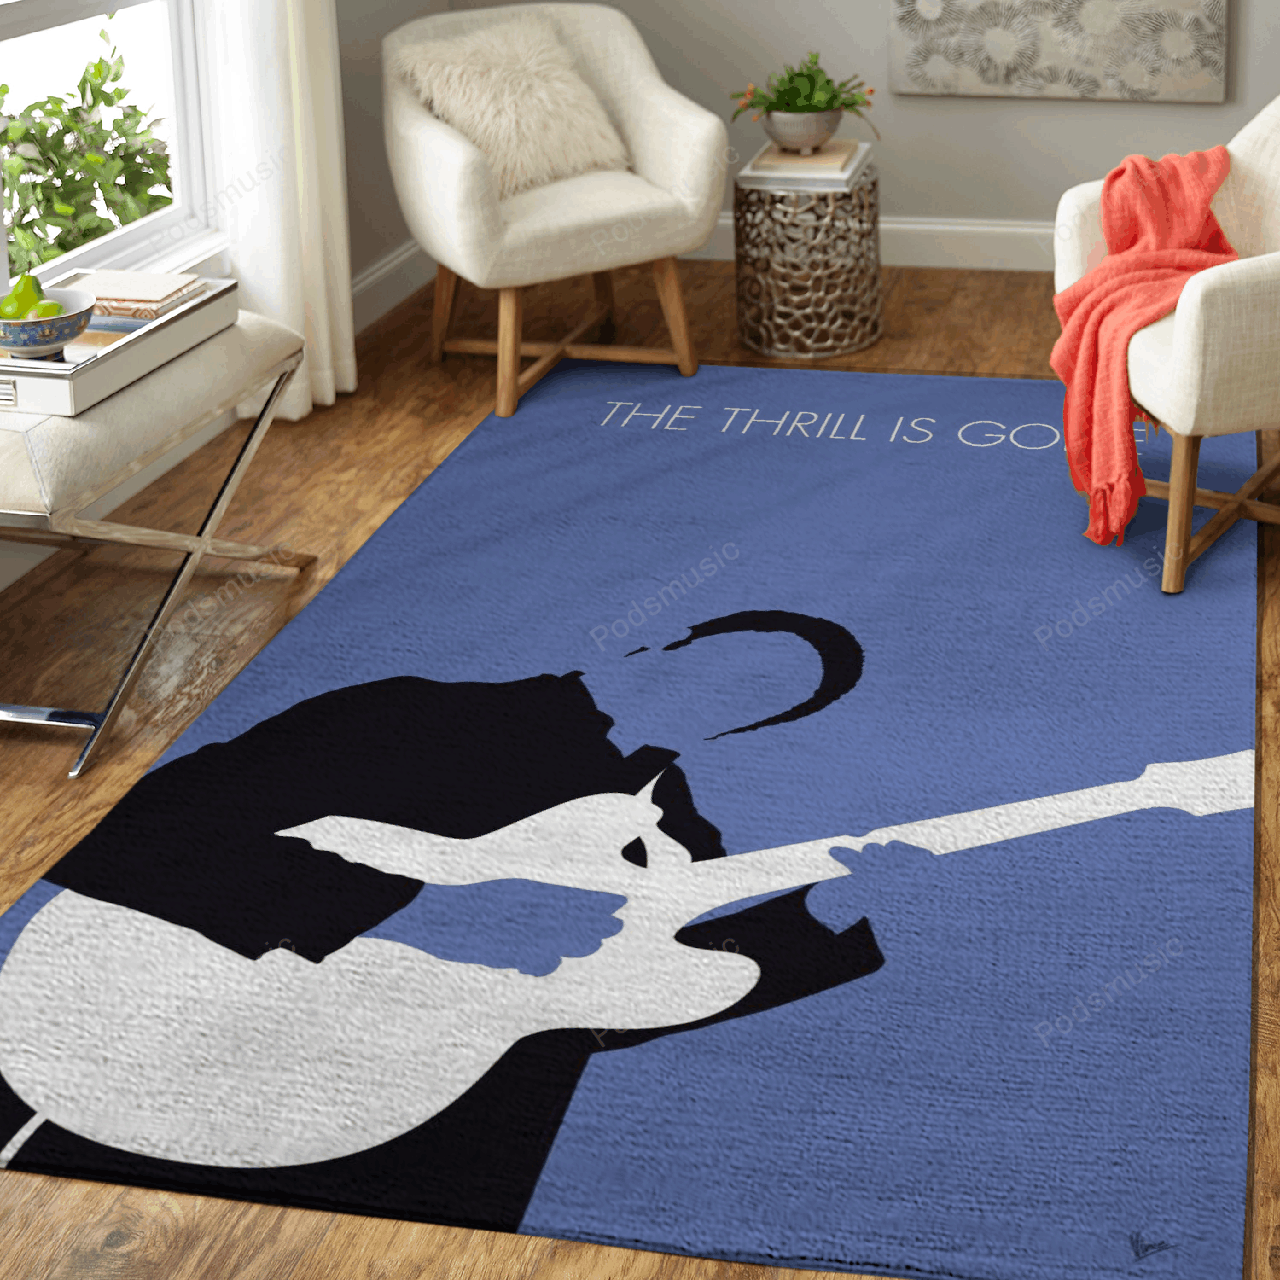 No048 MY BB KING Minimal Music Artwork BB, KING, The, Th ...  - Minimal Music Artworks Art For Fans Area Rug Living Room Carpet Floor Decor